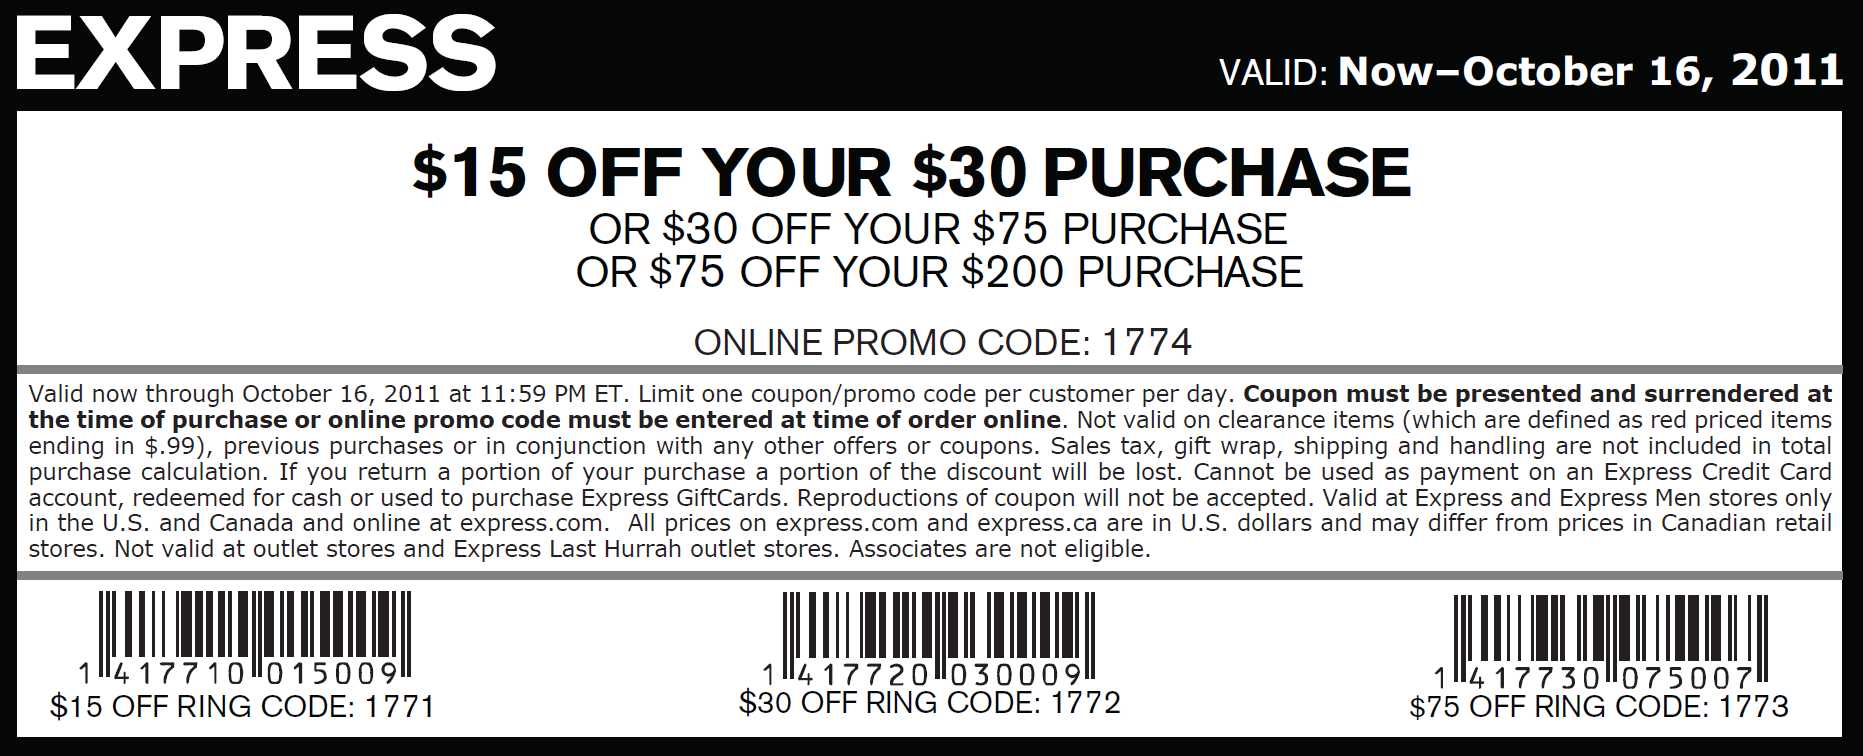 Express discount coupons